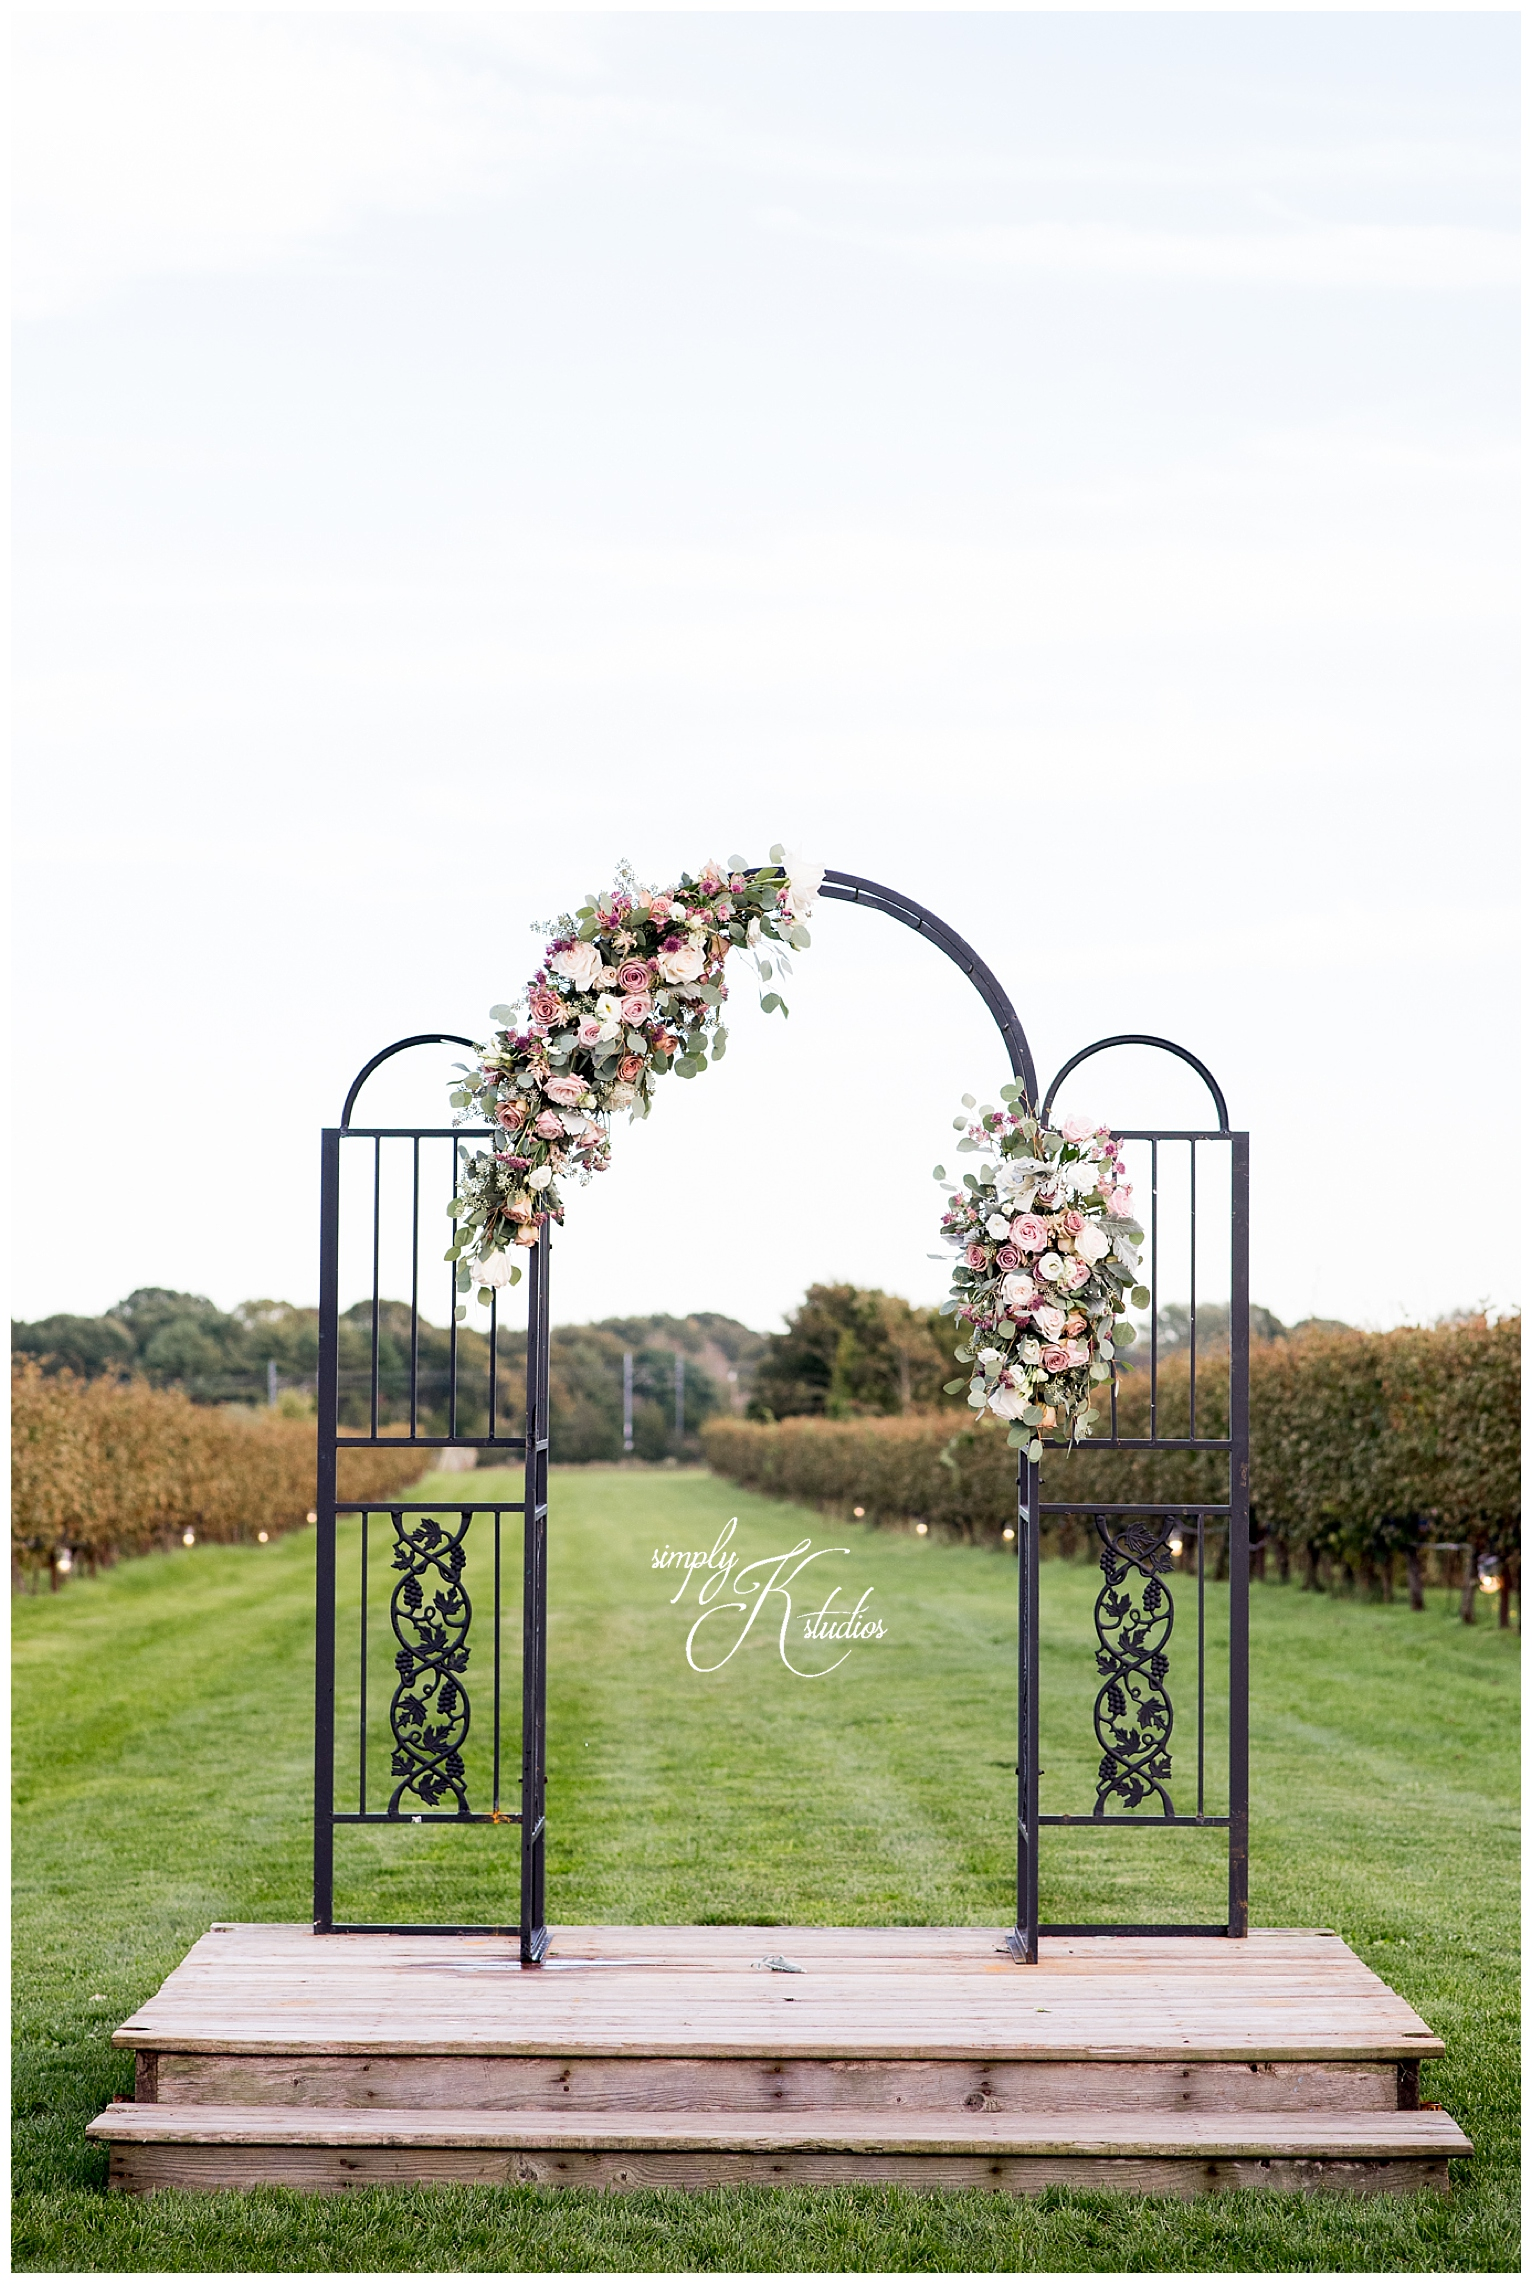 94. Wedding Altar by Stylish Blooms in CT.jpg